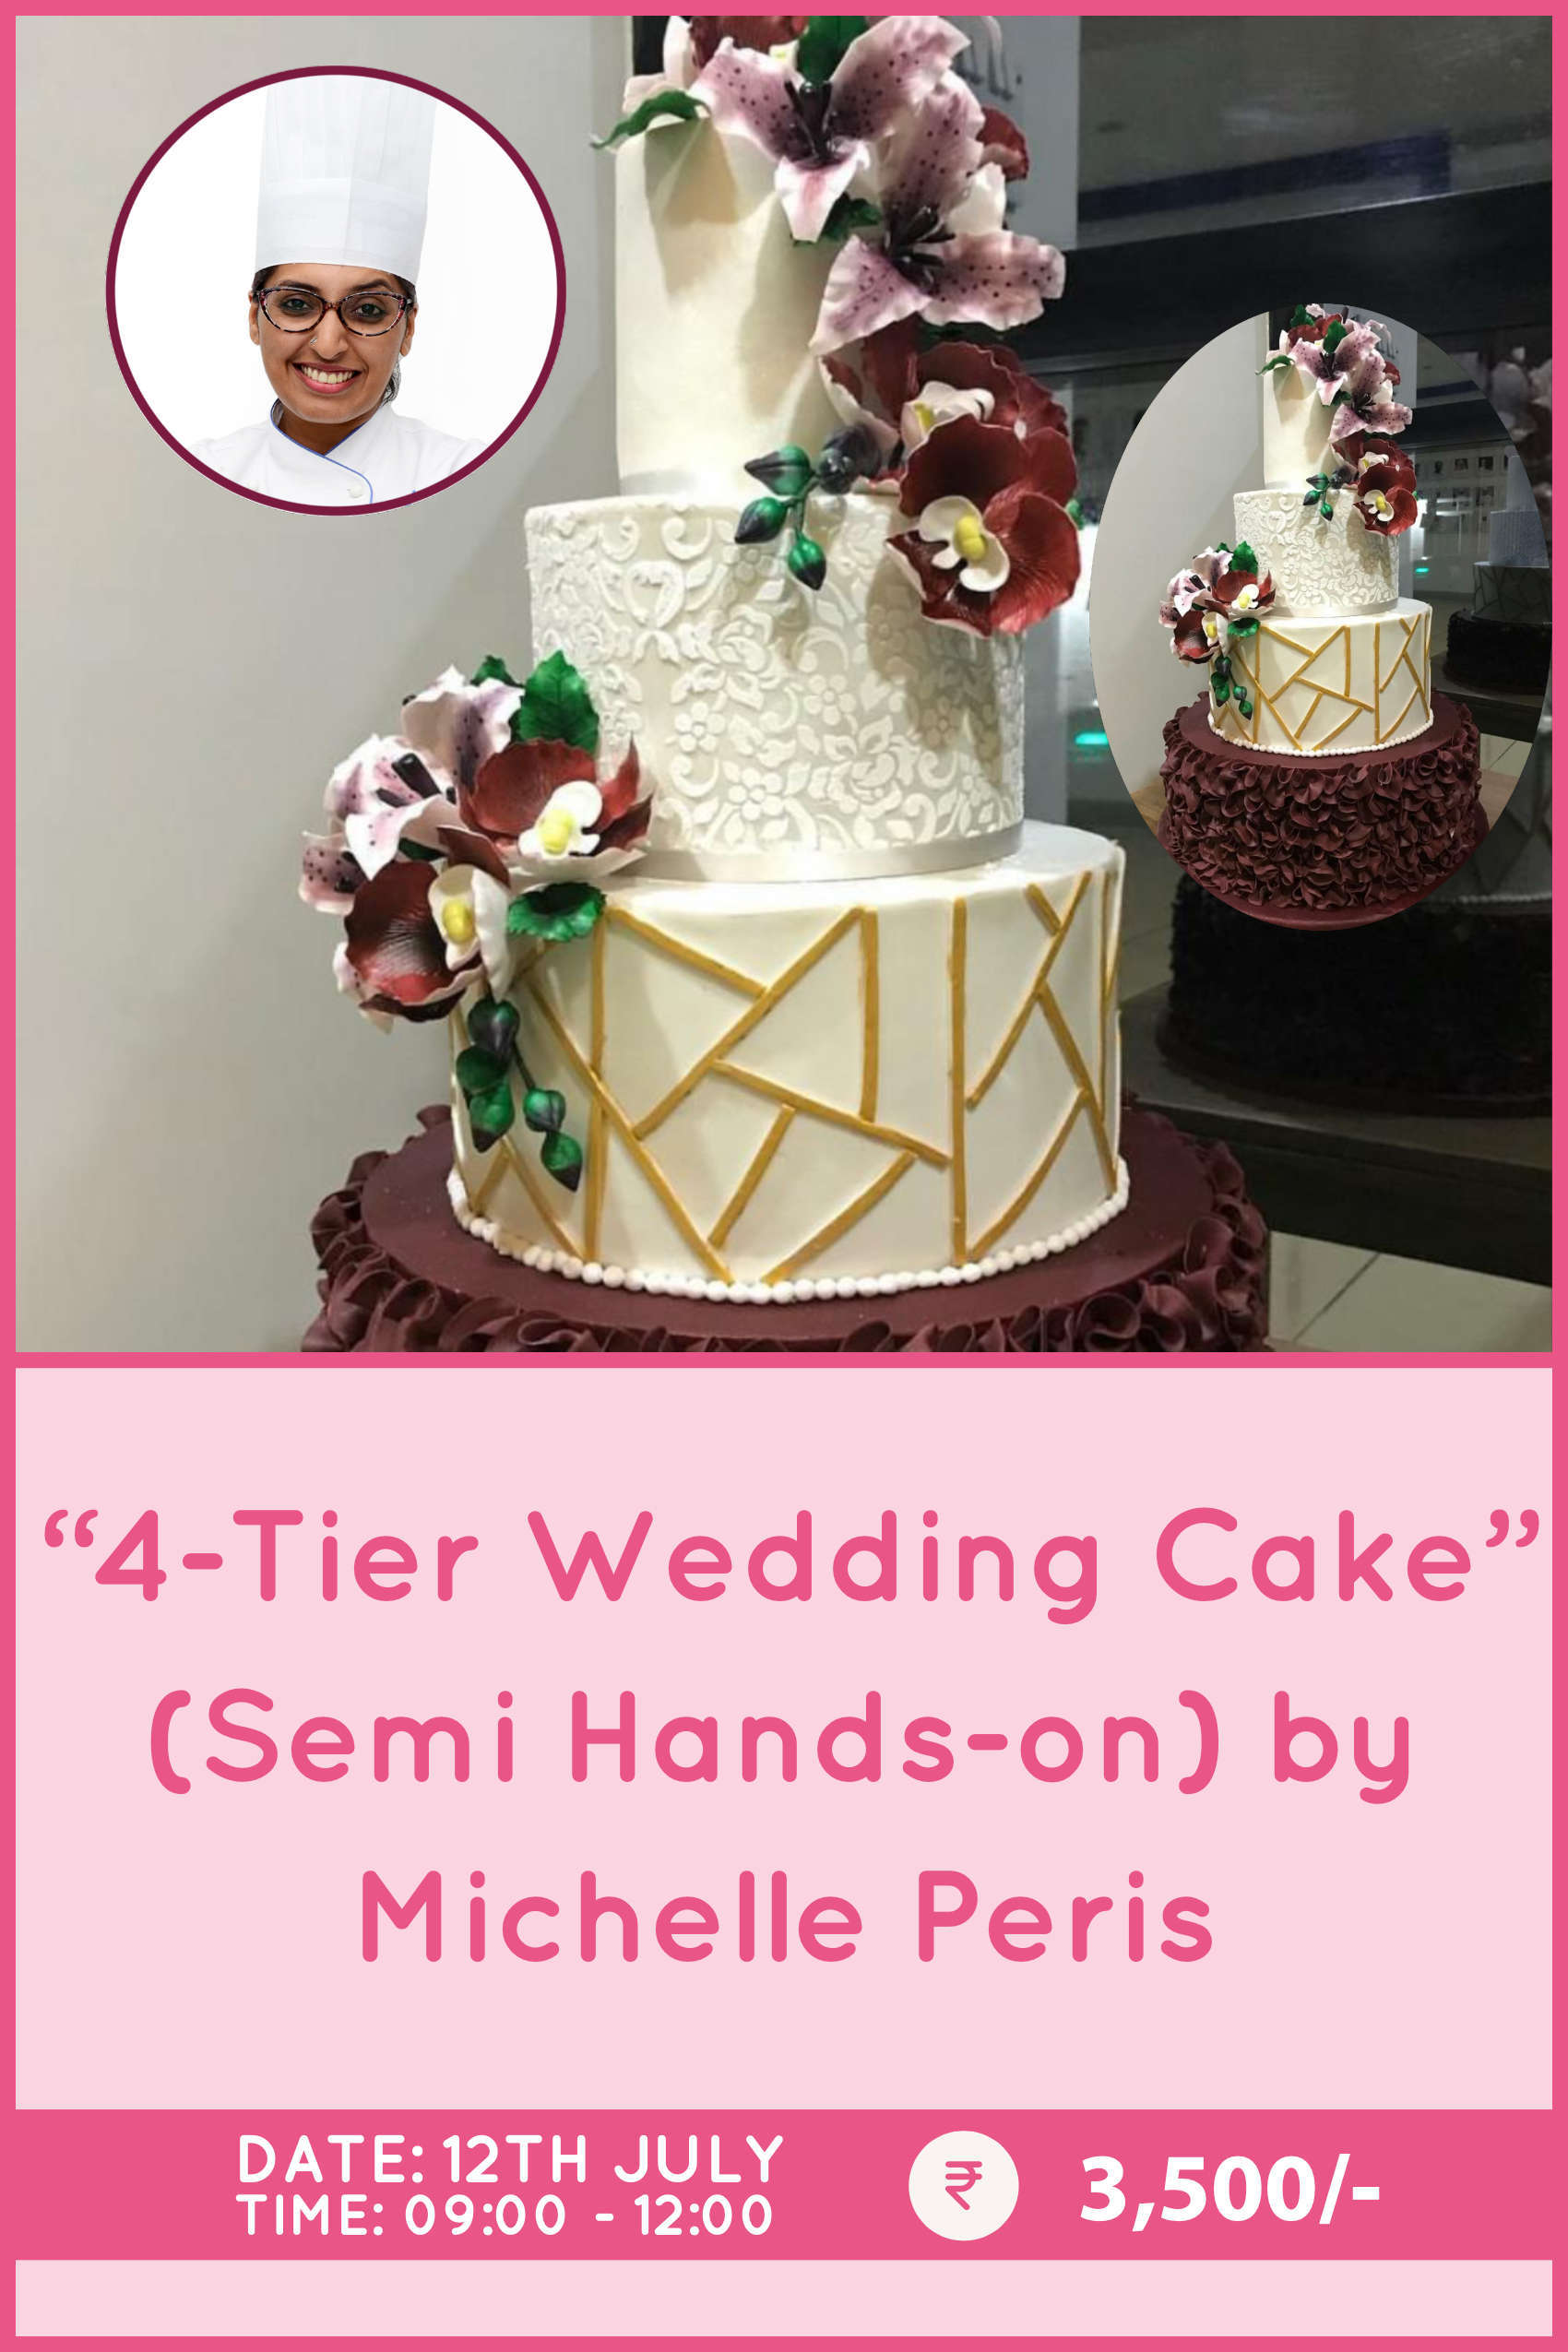 4-Tier Wedding Cake by Michelle Peris